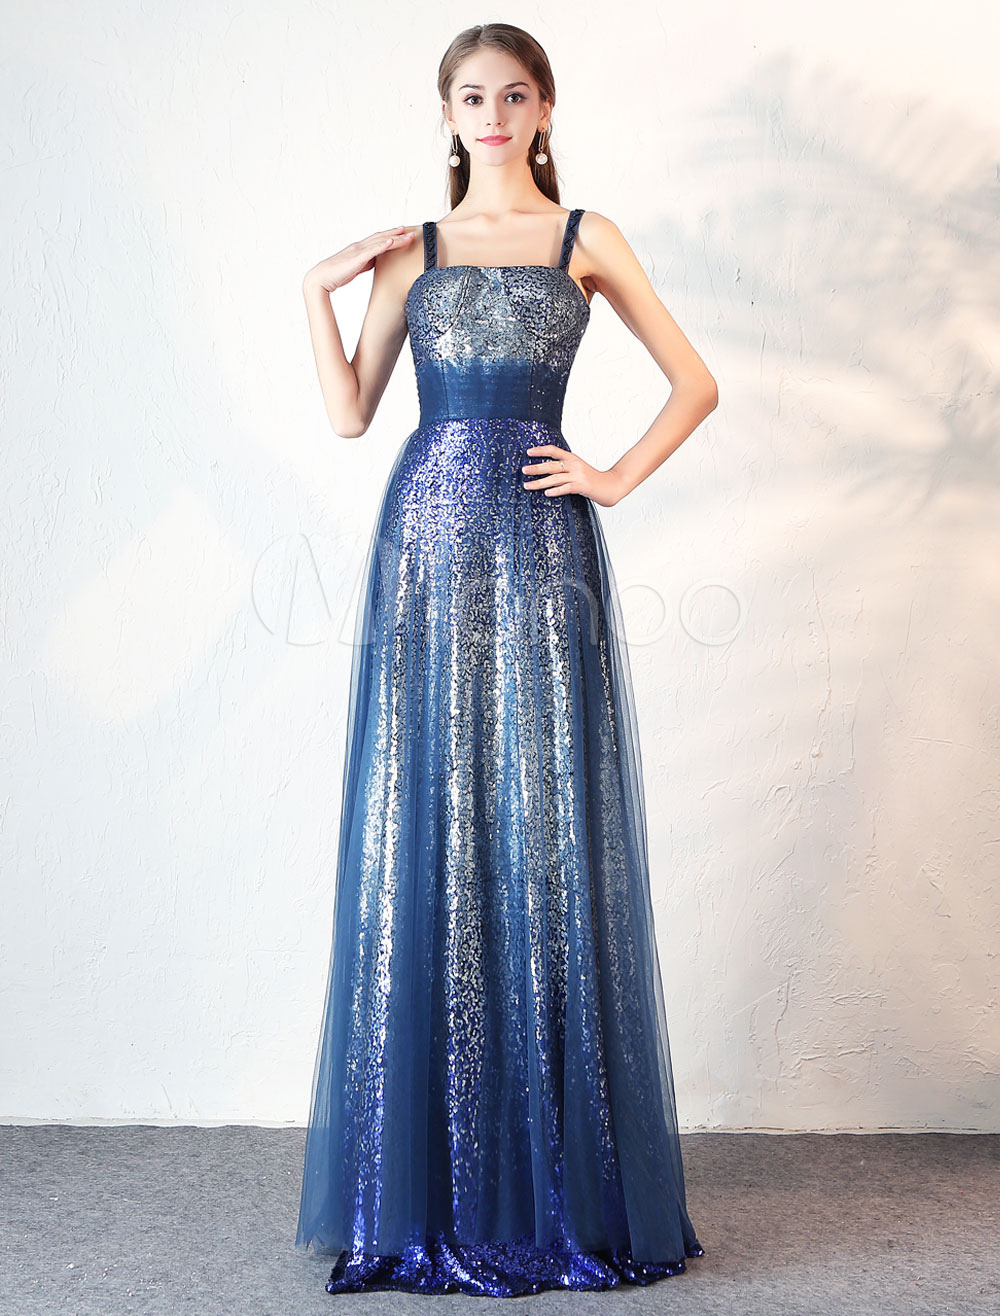 Buy Evening Dresses Sequin Blue Prom Dress Straps Pleated Waist Floor Length Formal Party Dress for $131.99 in Milanoo store